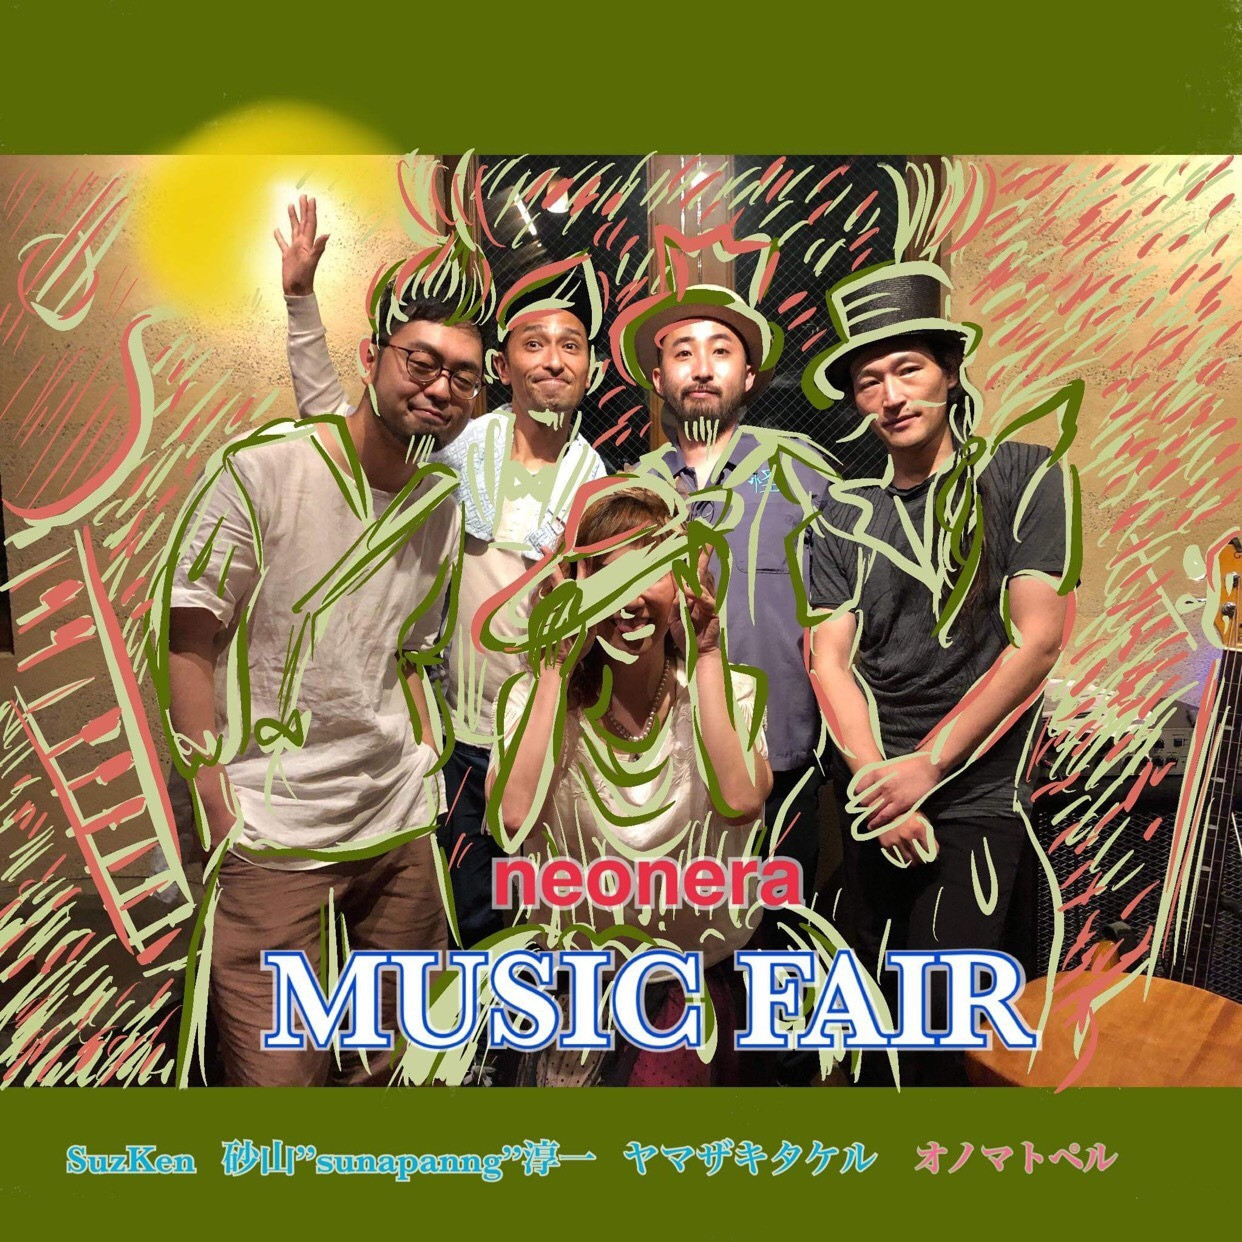 3月13日(土)neonera MUSIC FAIR